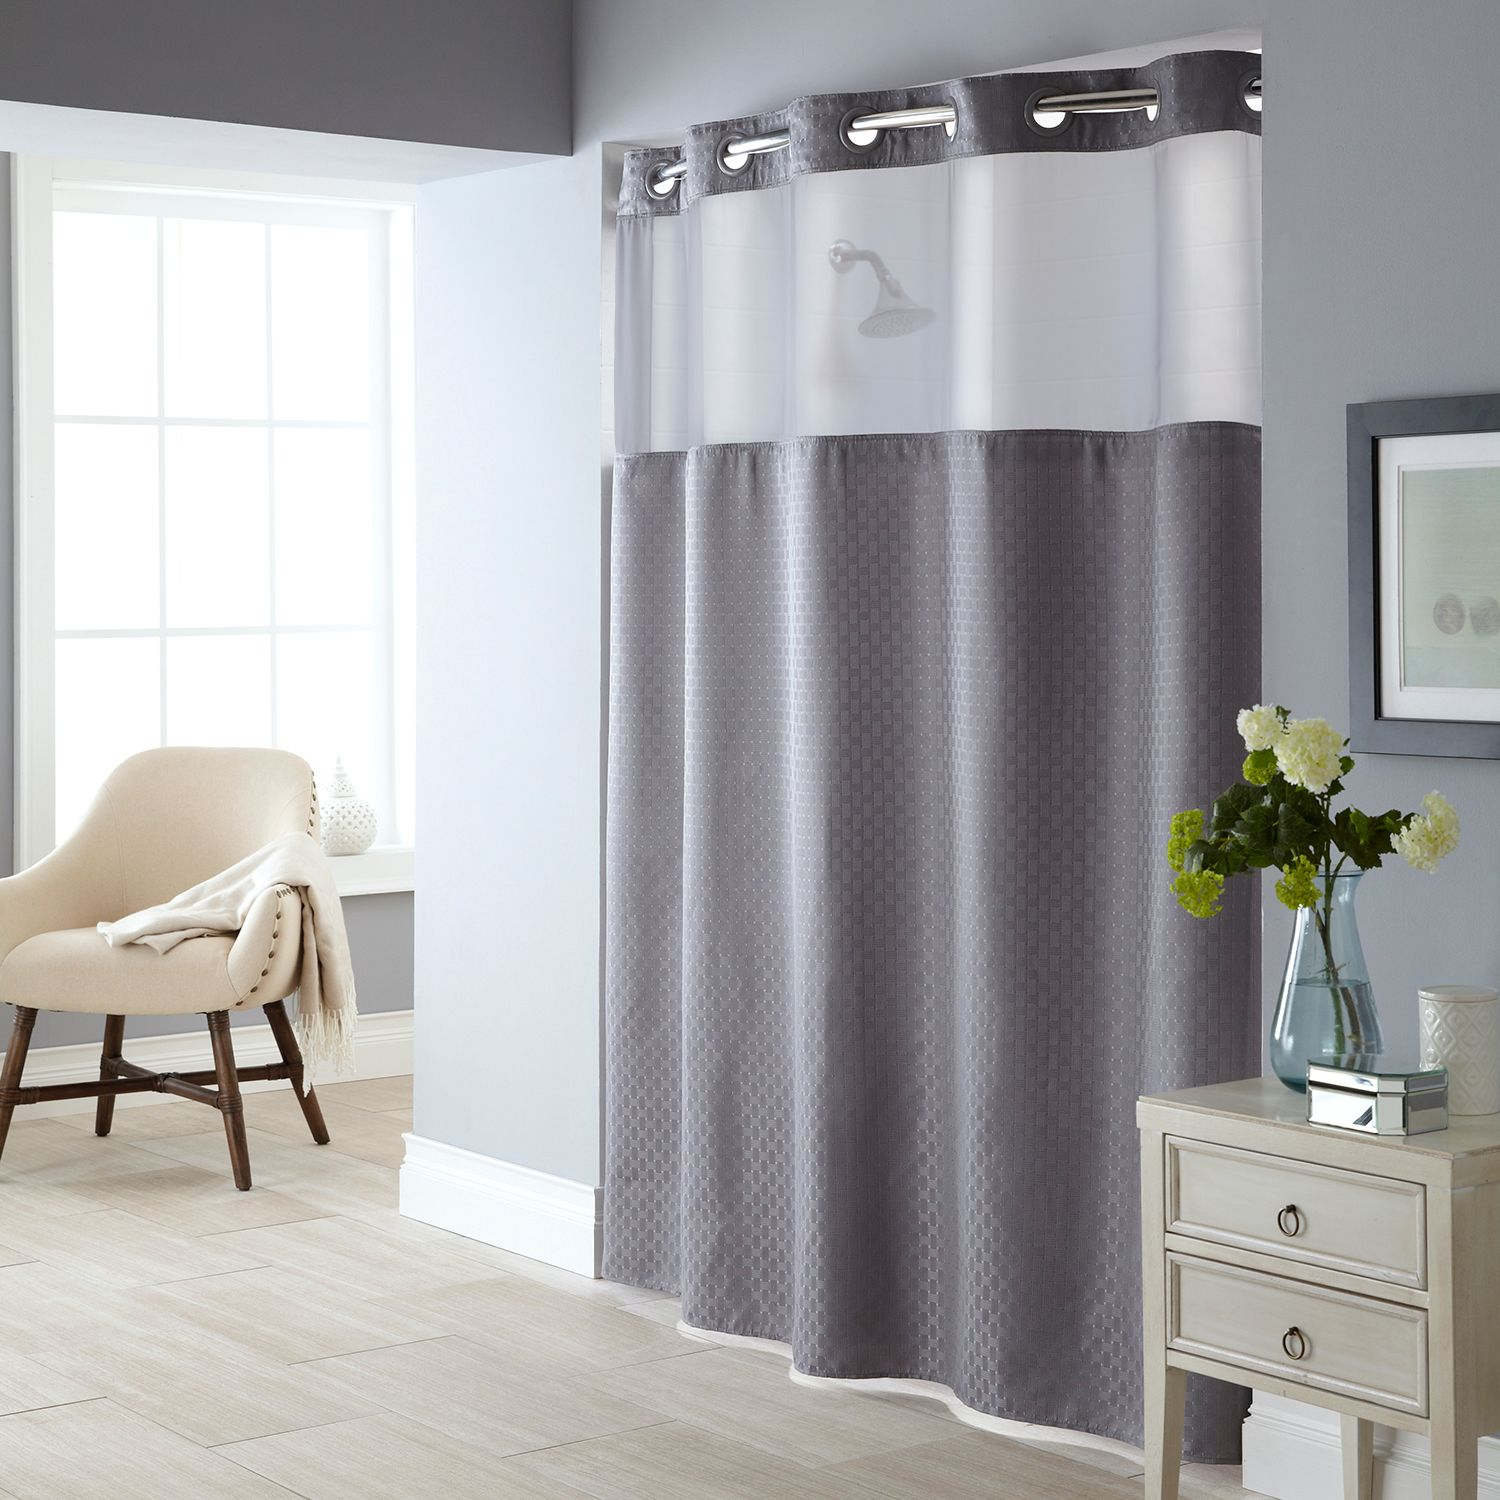 Fabric Shower Curtain U0026 Liner Set